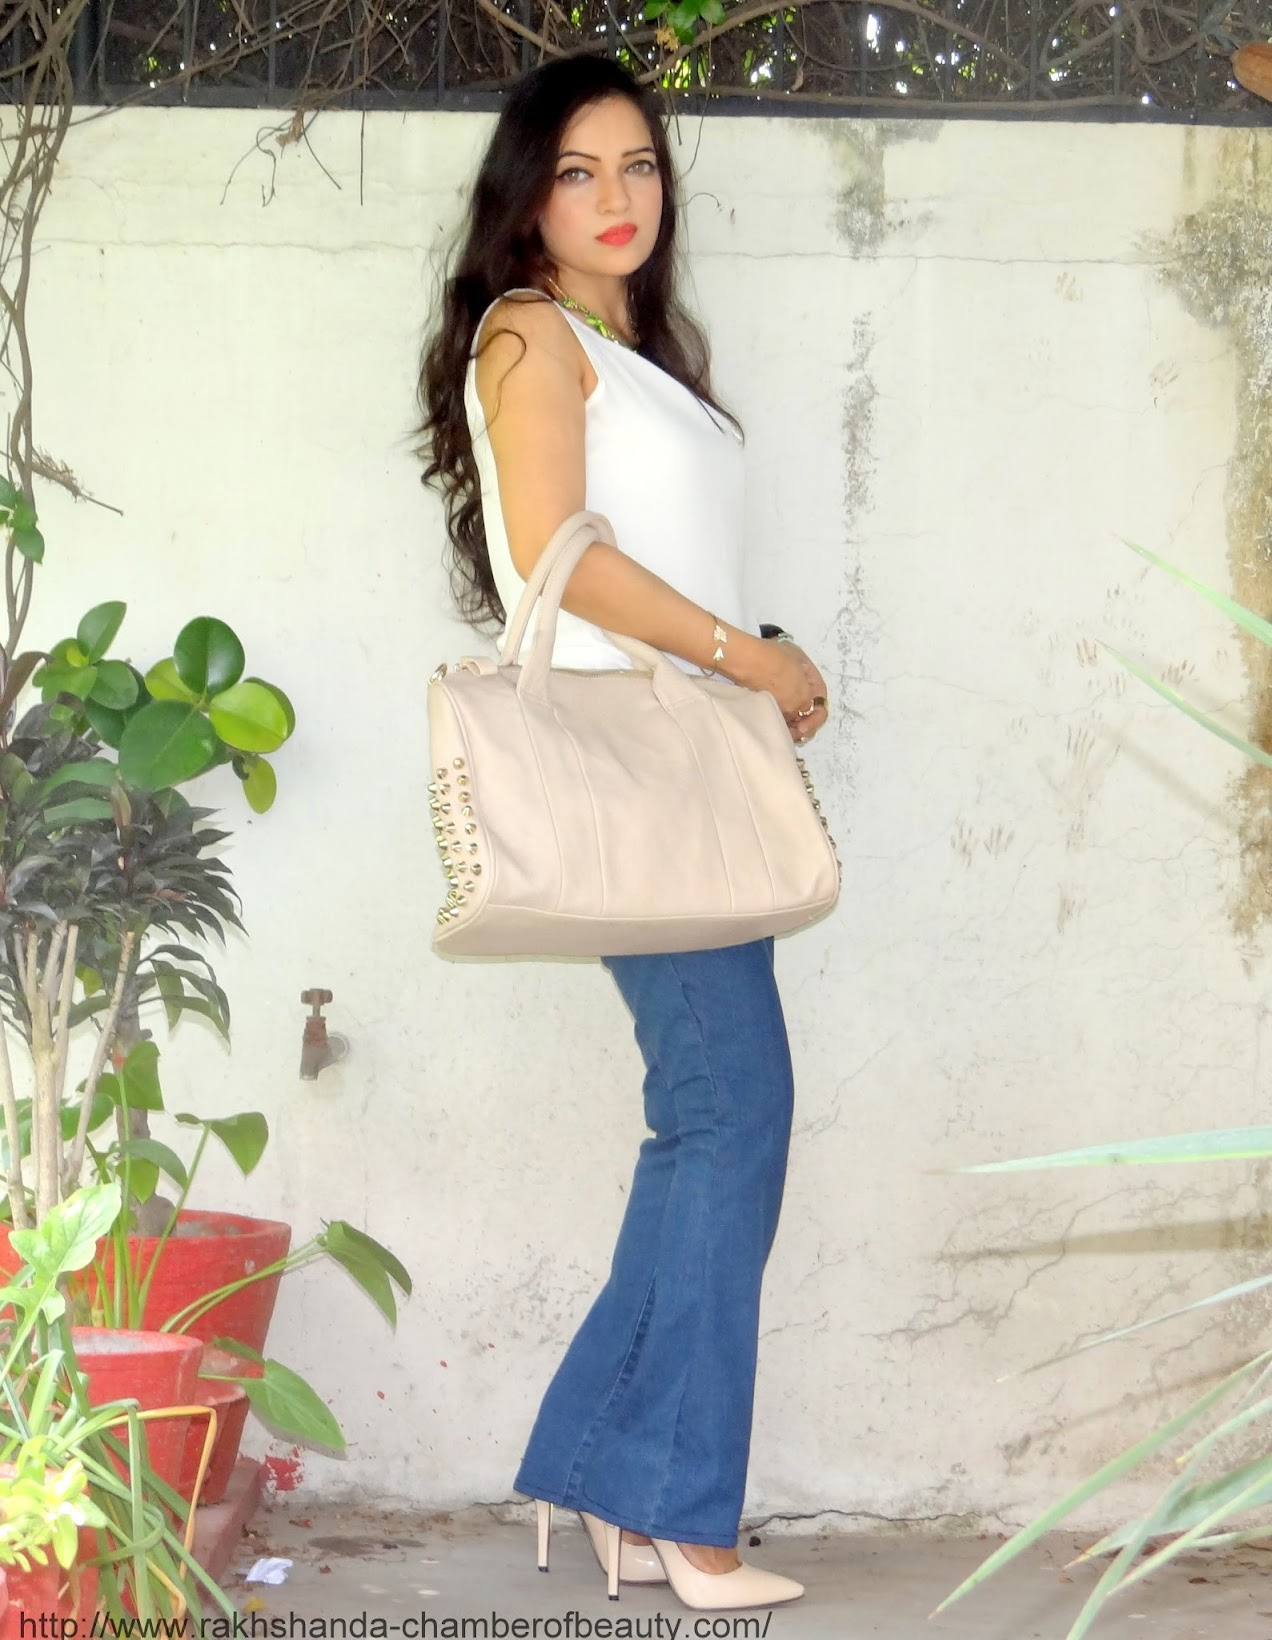 One Jeans- Three looks,Dorothy Perkins at Jabong.com